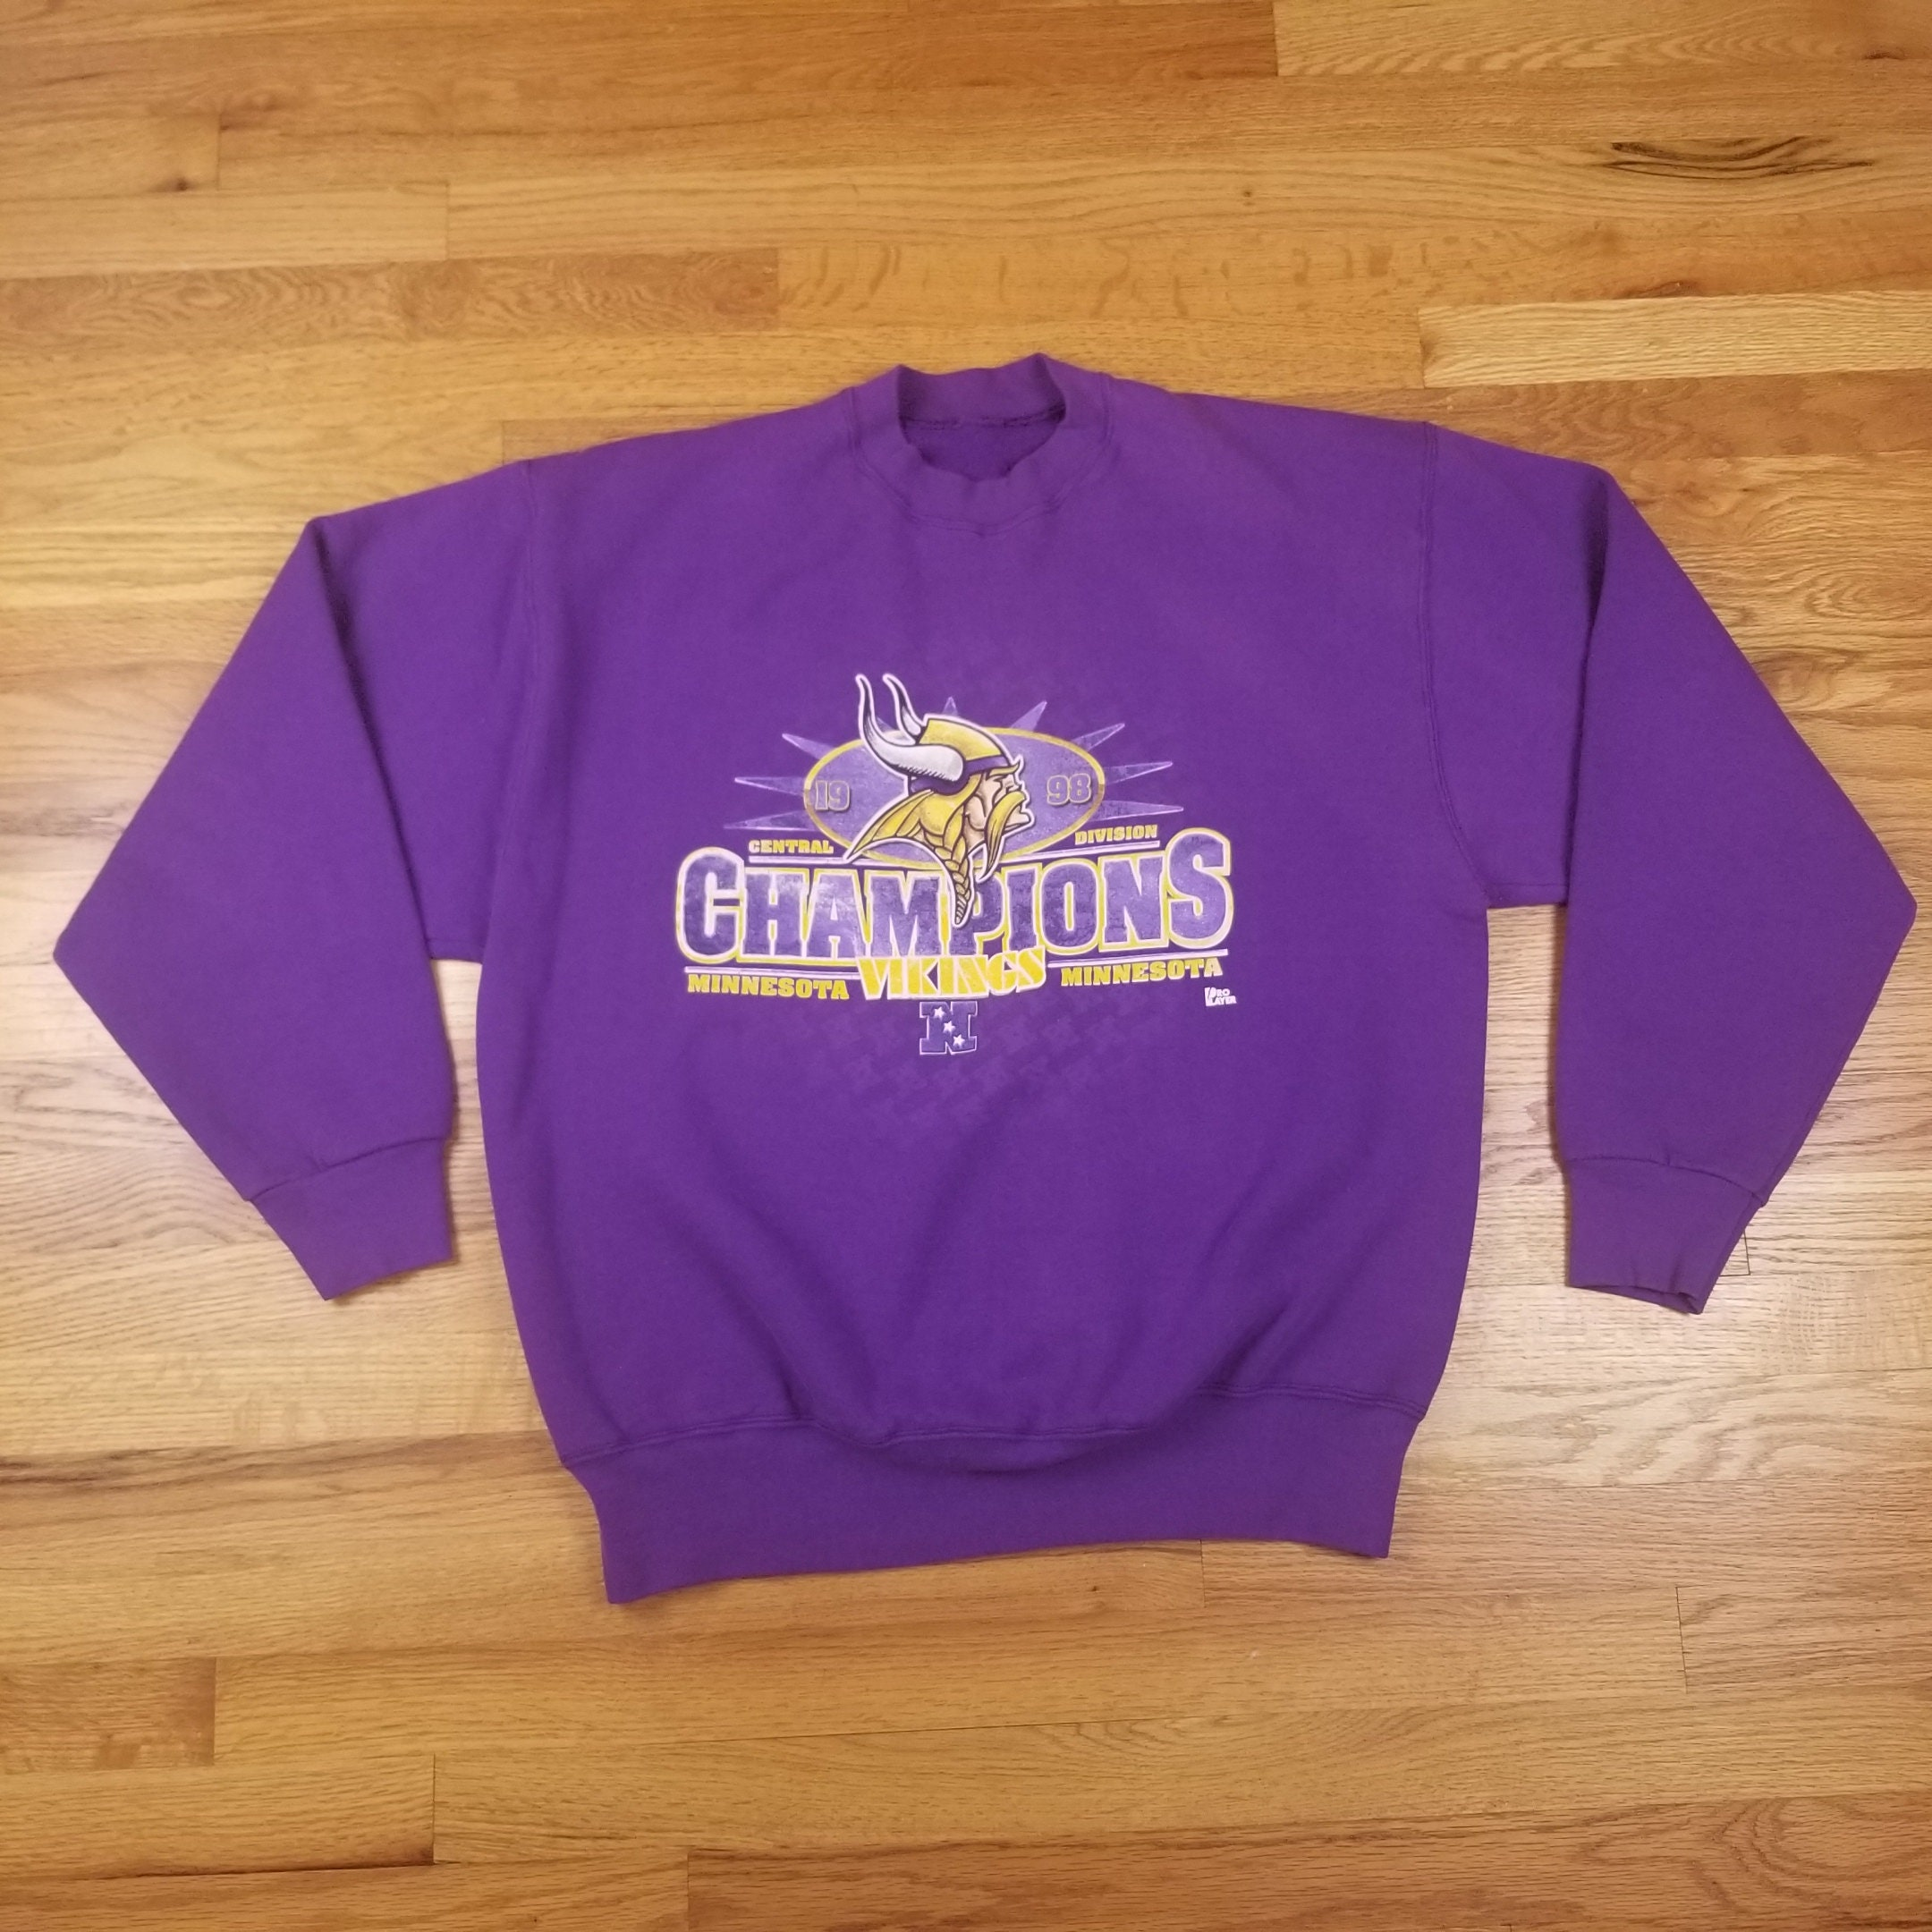 c6a0504b Vintage 90s Vikings Champions Purple Sweatshirt Size XL X Large